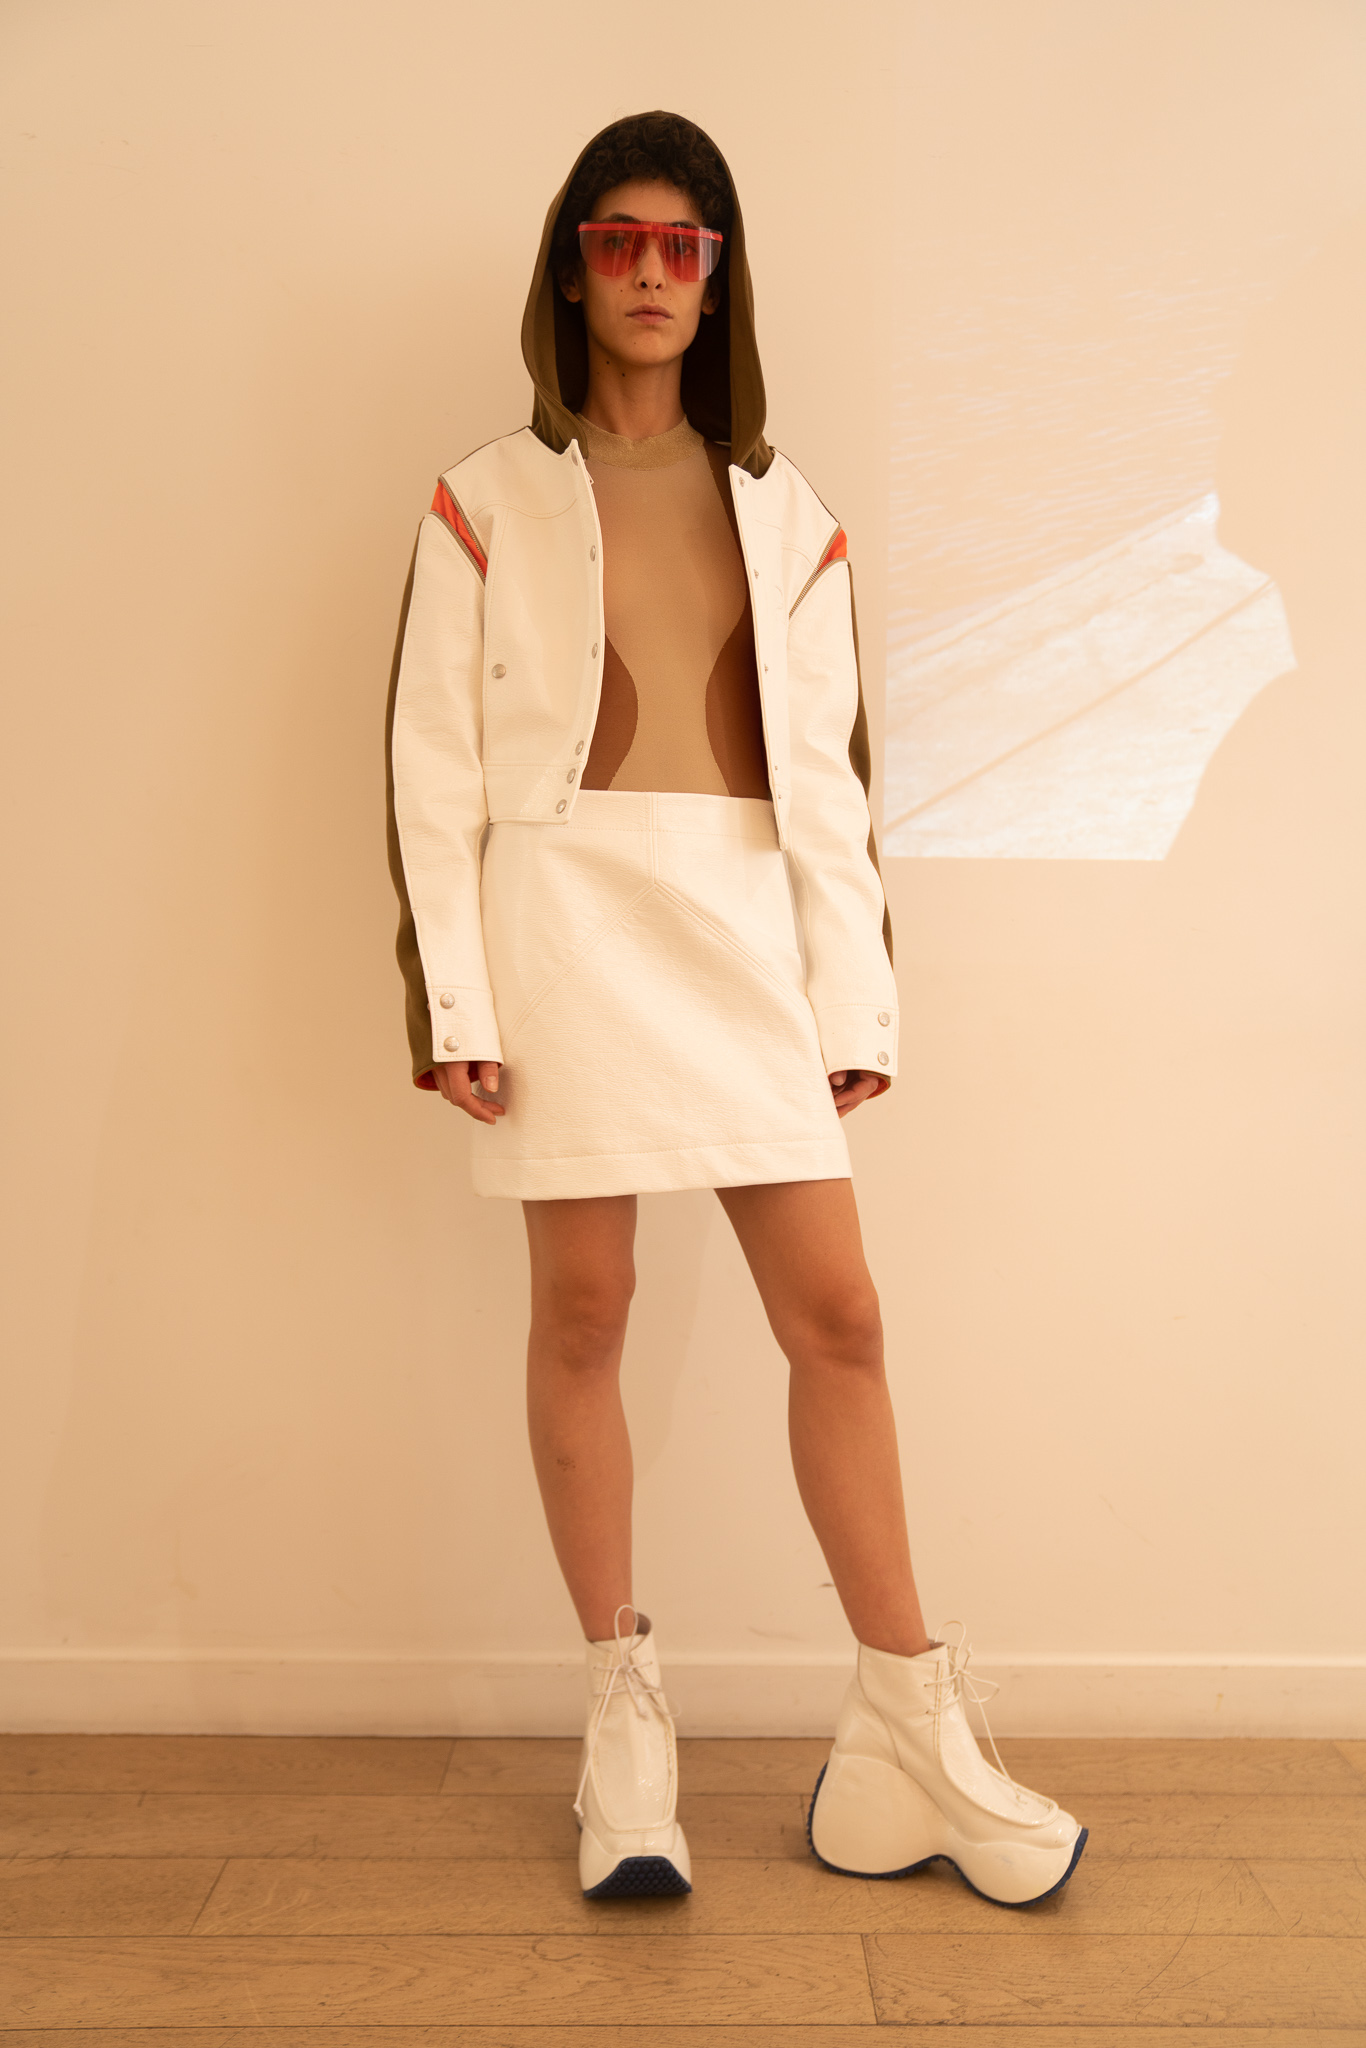 Courreges Hooded Multi Colored Jacket Undershirt in Brown Mini Skirt in White SS20